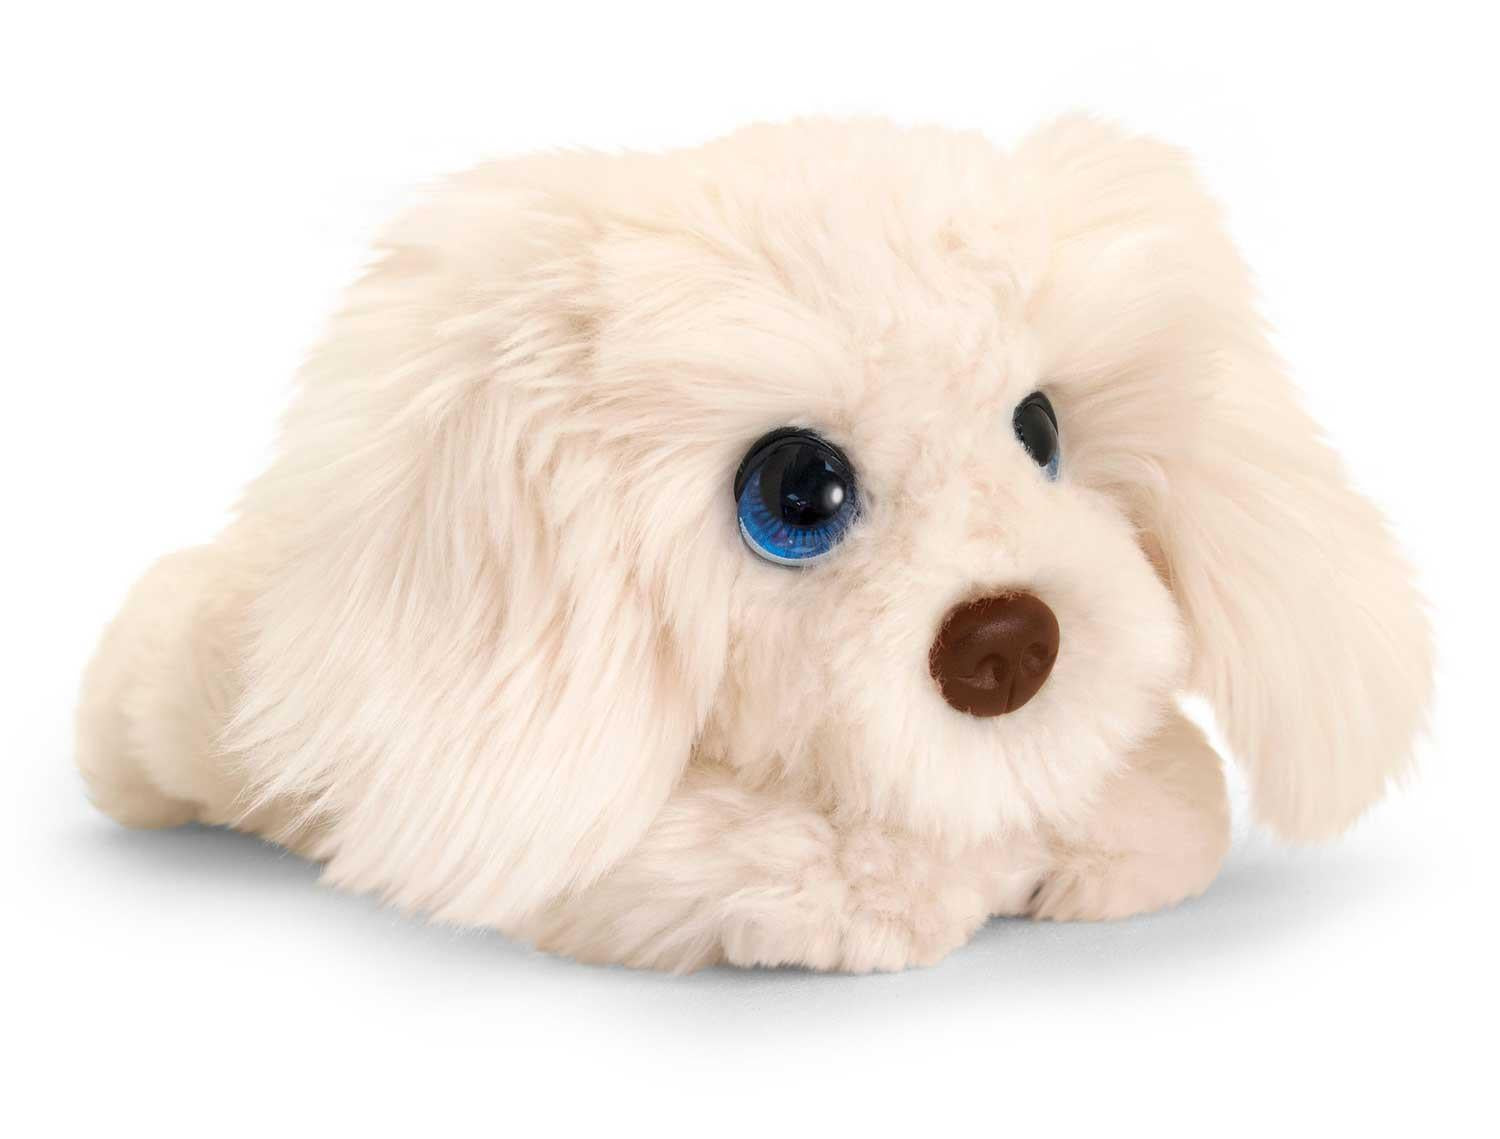 Keel Signature Cuddle Puppy Labradoodle Dog Soft Toy 32cm